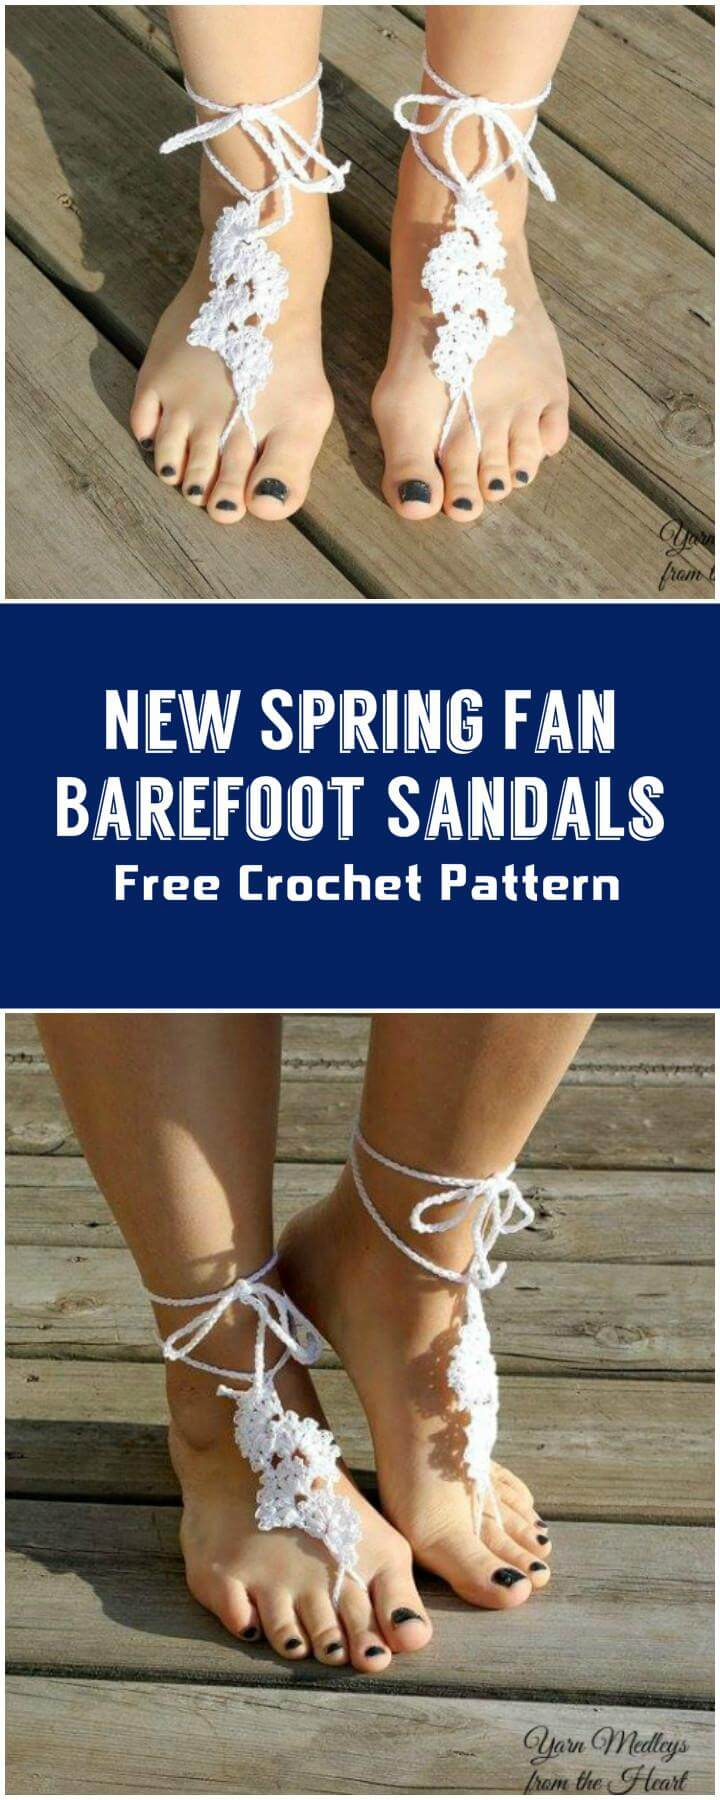 New Spring Fan Barefoot Sandals  Free Crochet Pattern